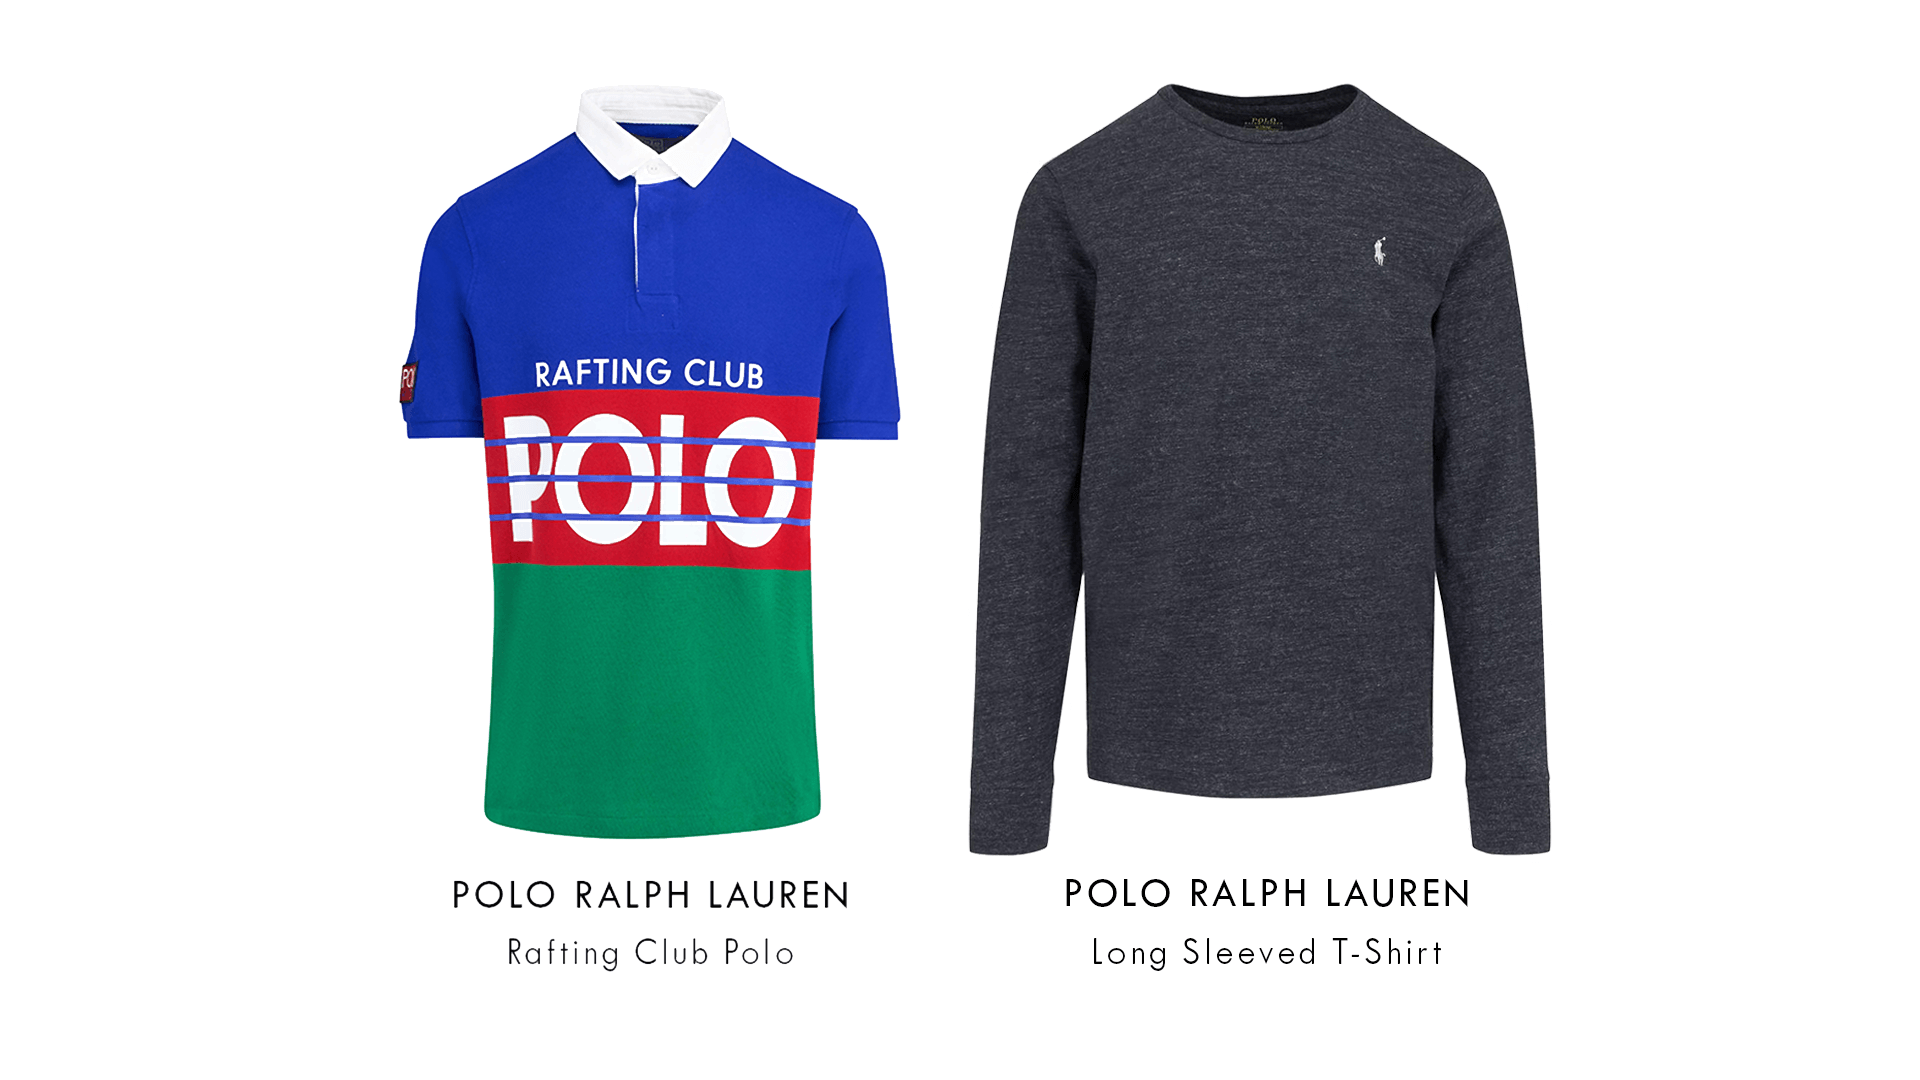 Polo Ralph Lauren Hi Tech Athleisure Blog Post Look 01